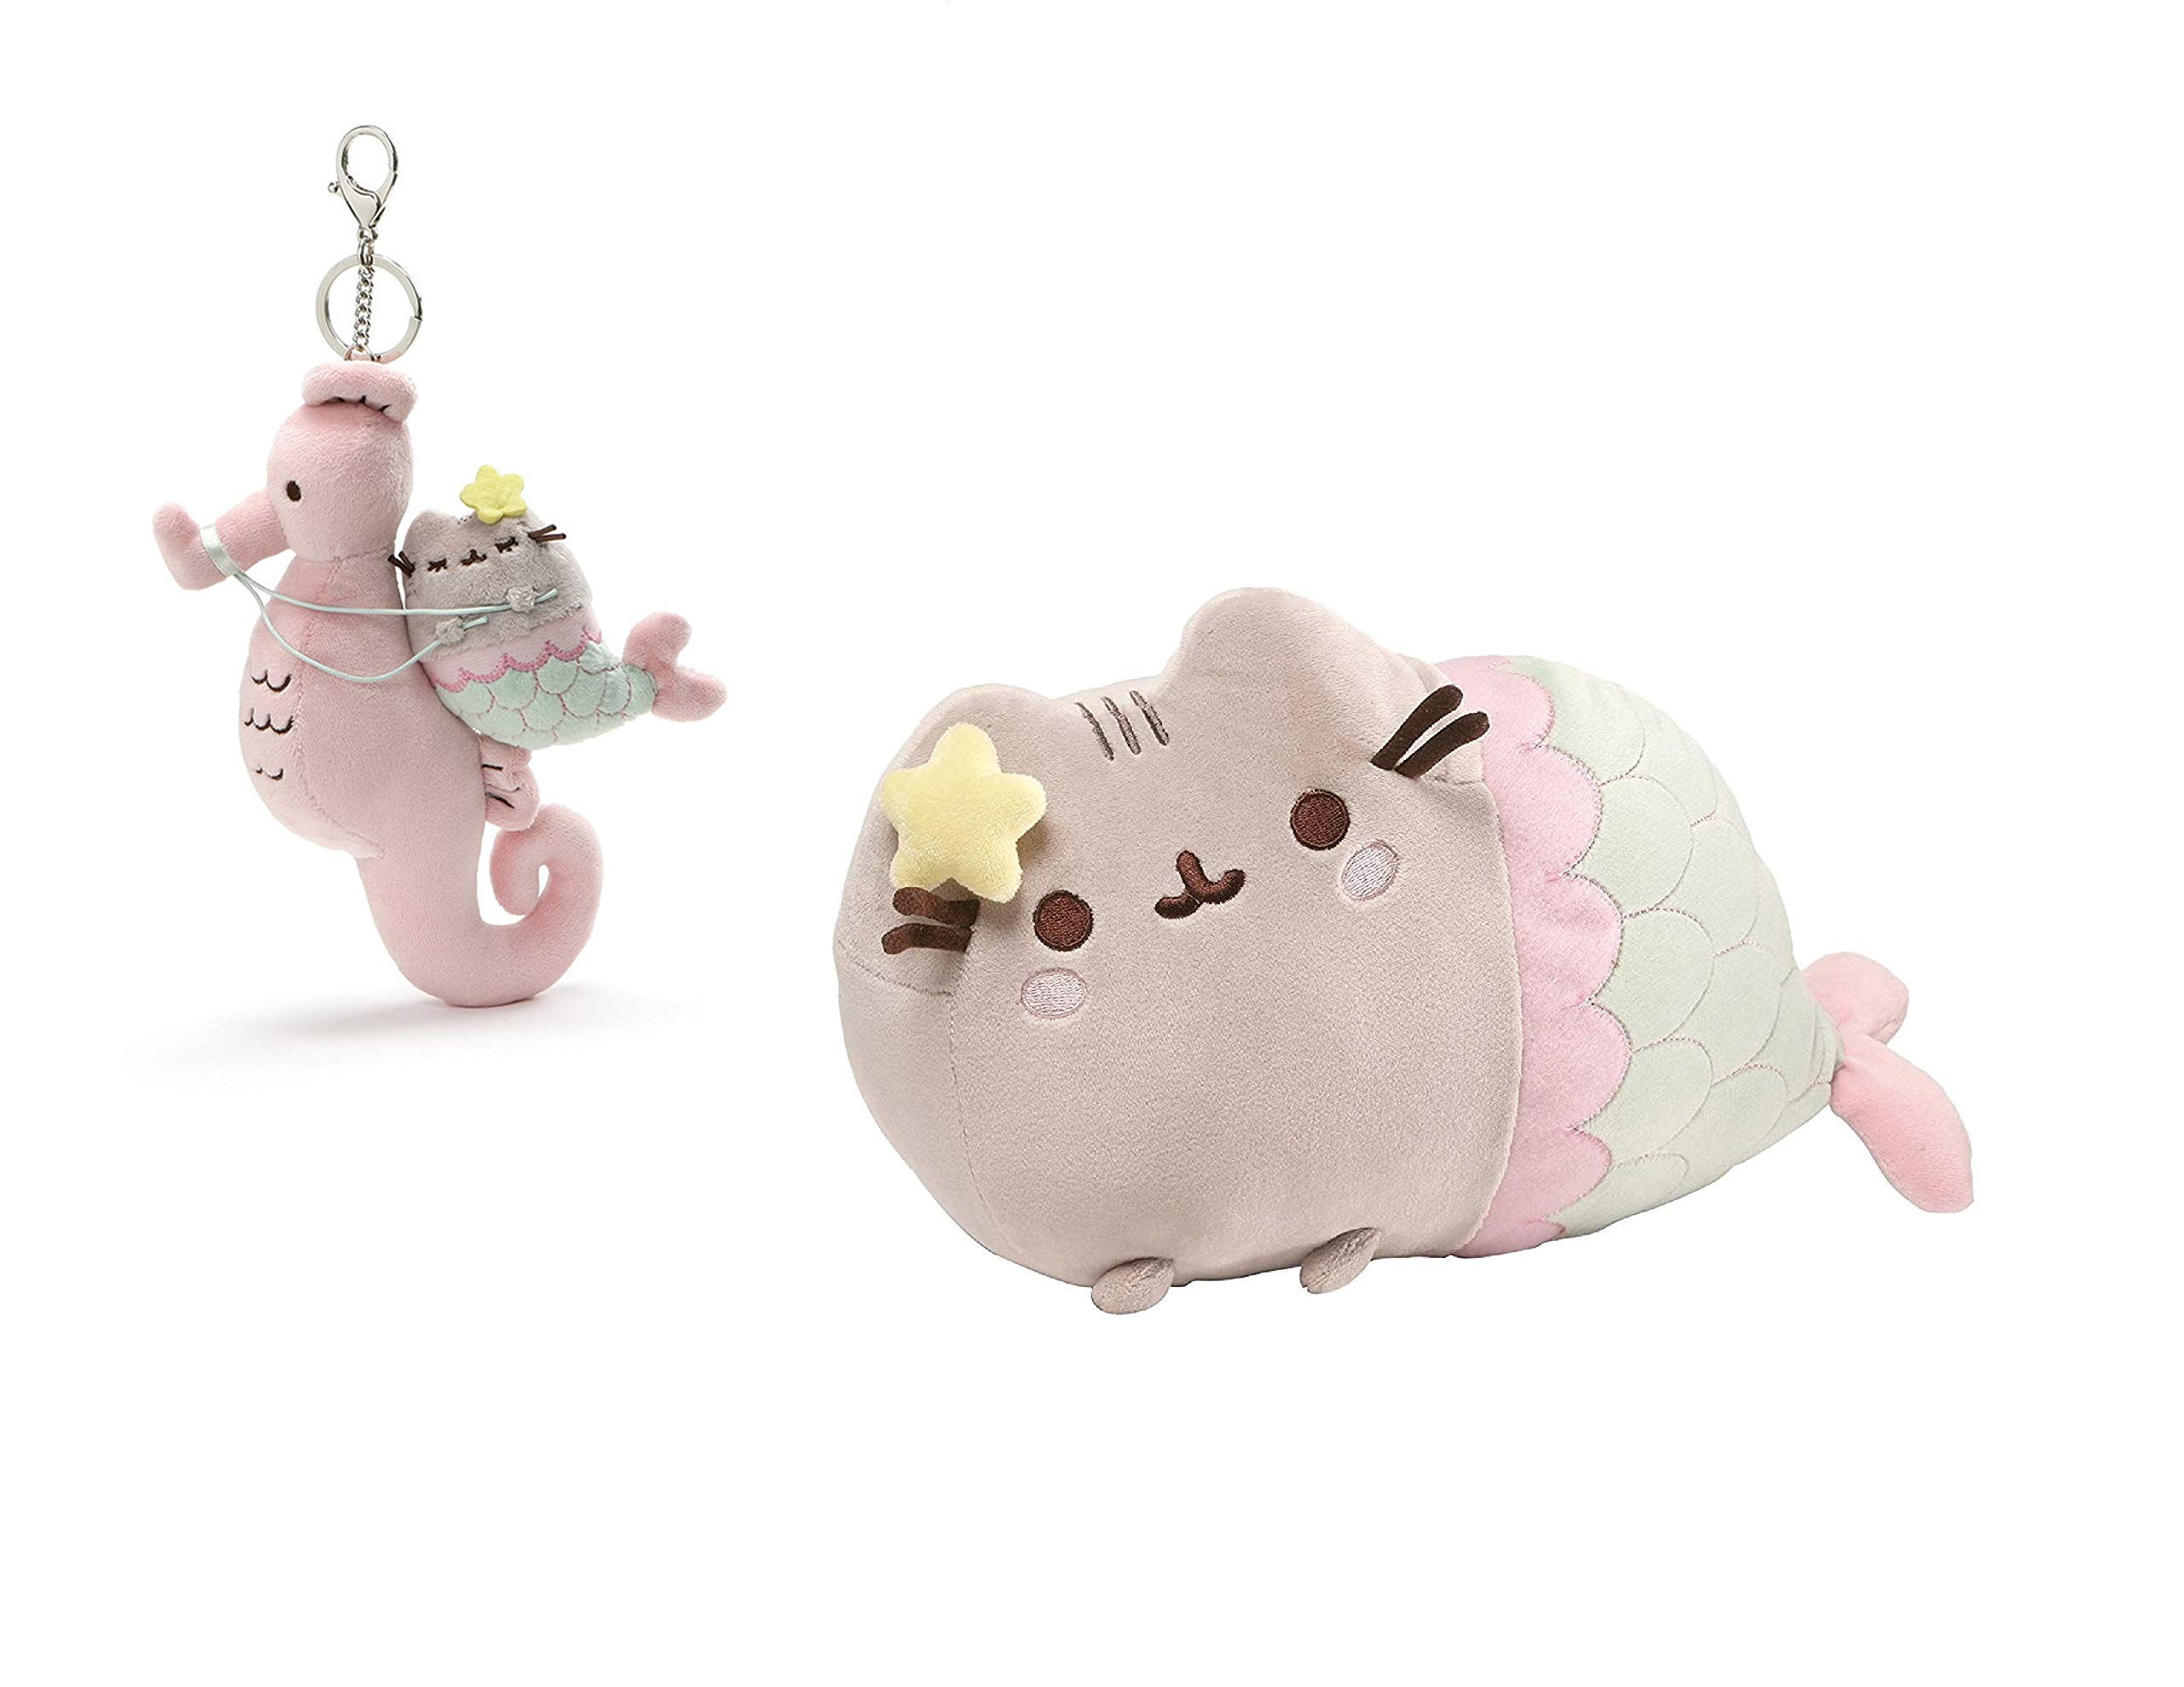 GUND Bundle of 2 Pusheen Mermaids: 12 Inch Pastel Plush Mermaid and 8.5 Inch Pusheen Mermaid and Seahorse Deluxe Keychain by GUND